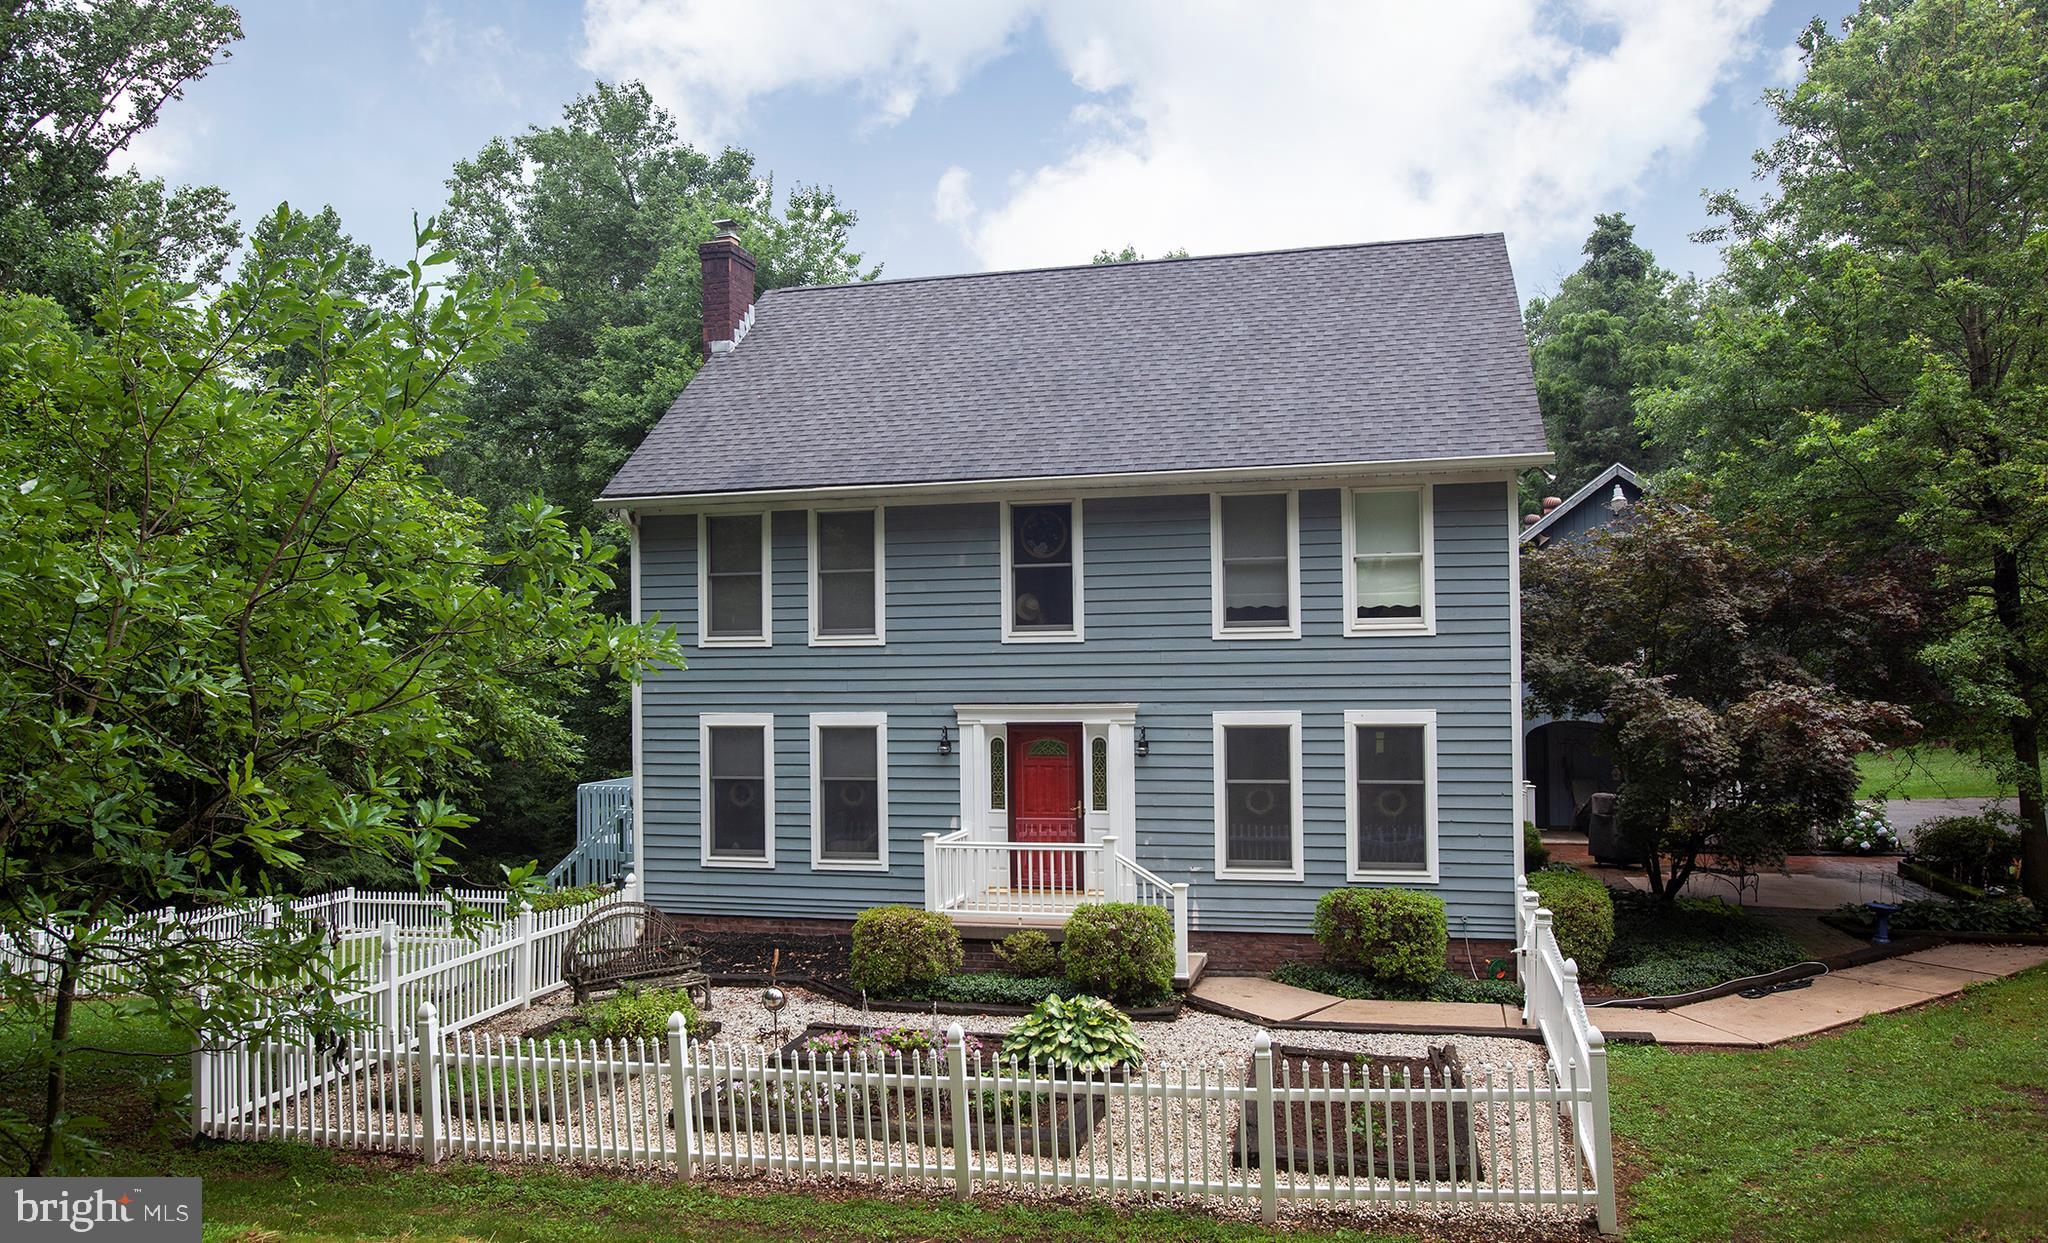 6050 MOUNTAIN ROAD, DOVER, PA 17315